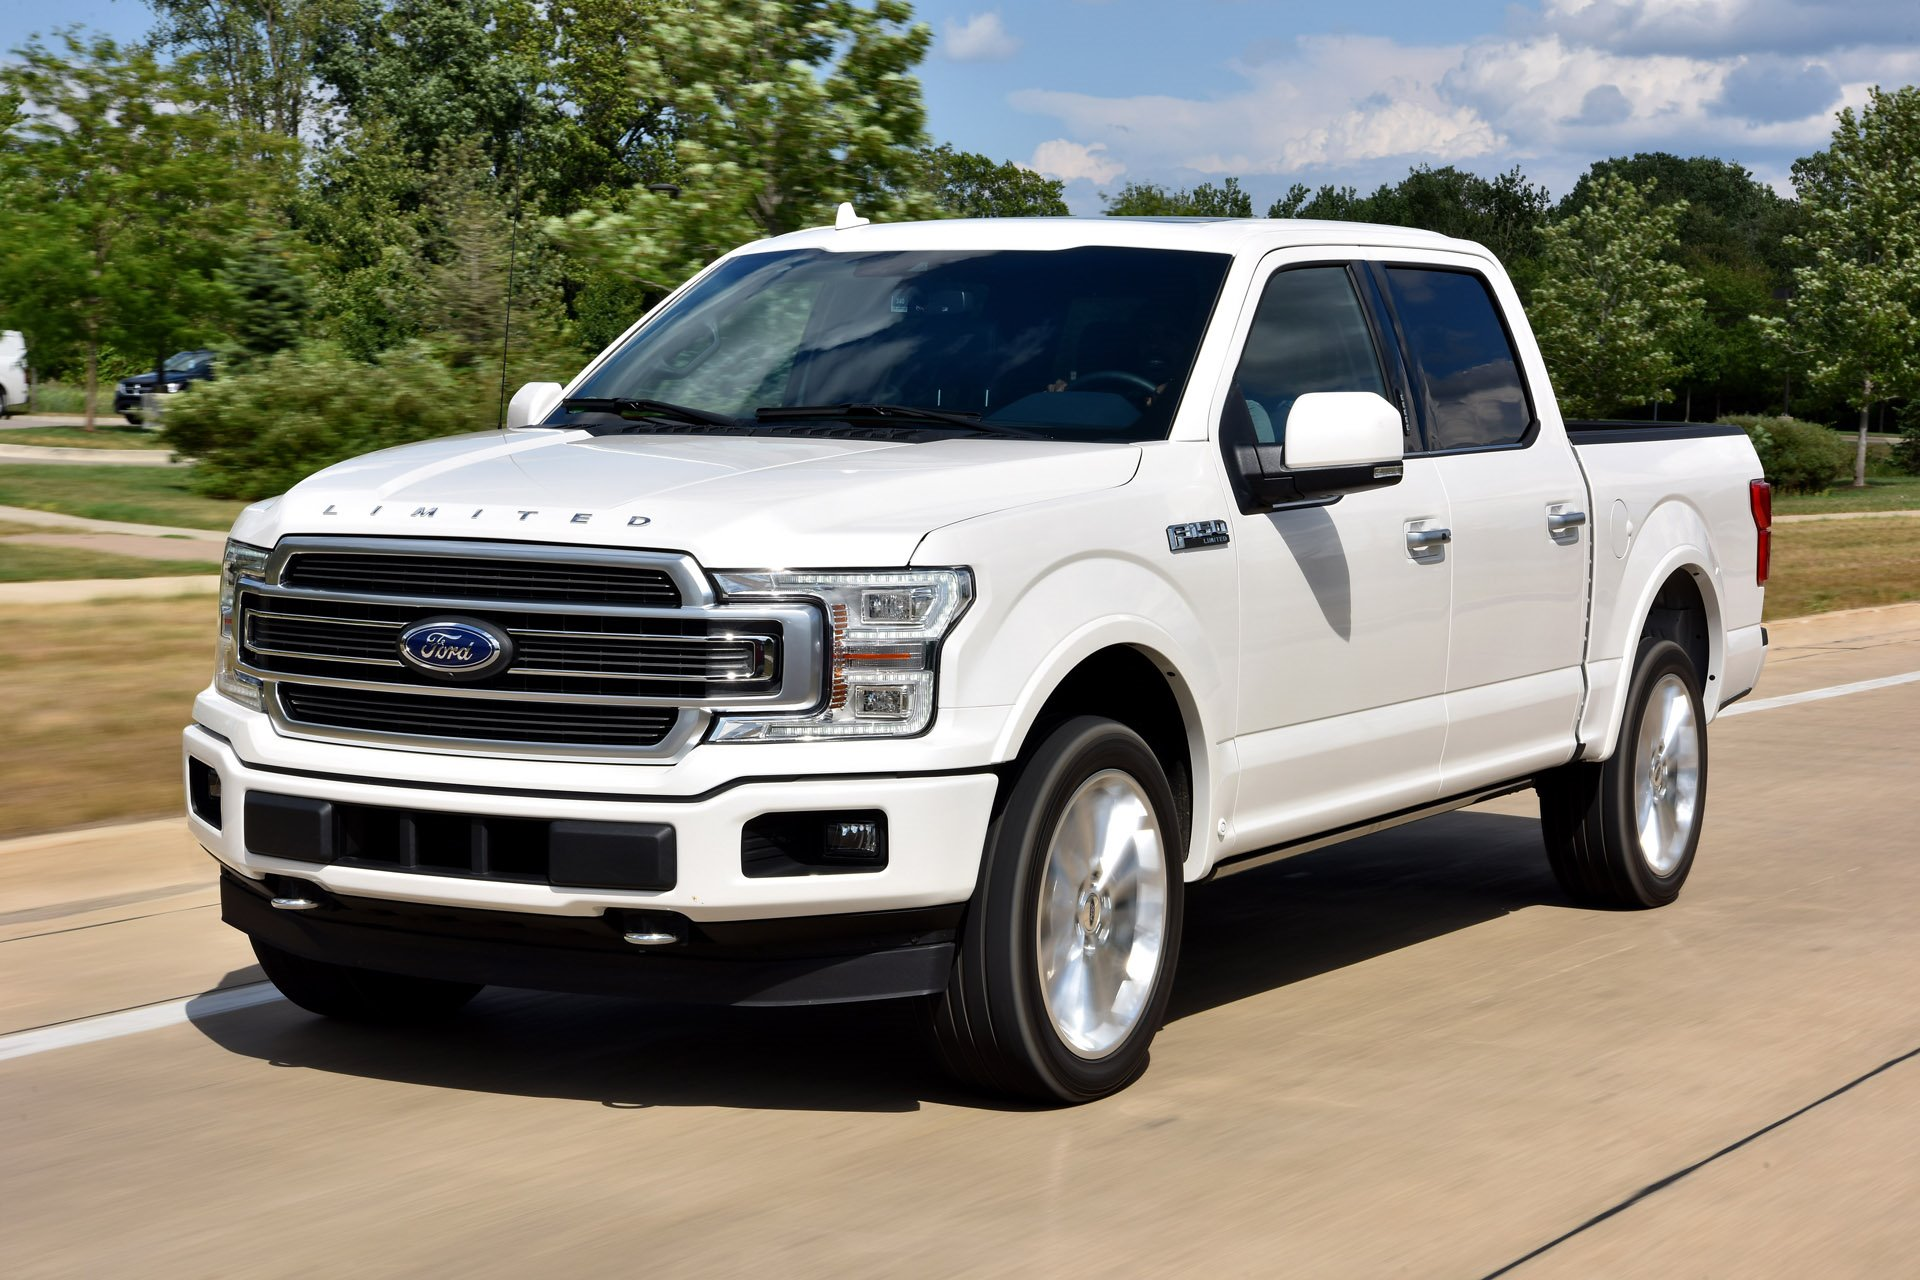 New 2019 Ford-F-150 Platinum F-150 Platinum for sale $58,645 at M and V Leasing in Brooklyn NY 11223 1